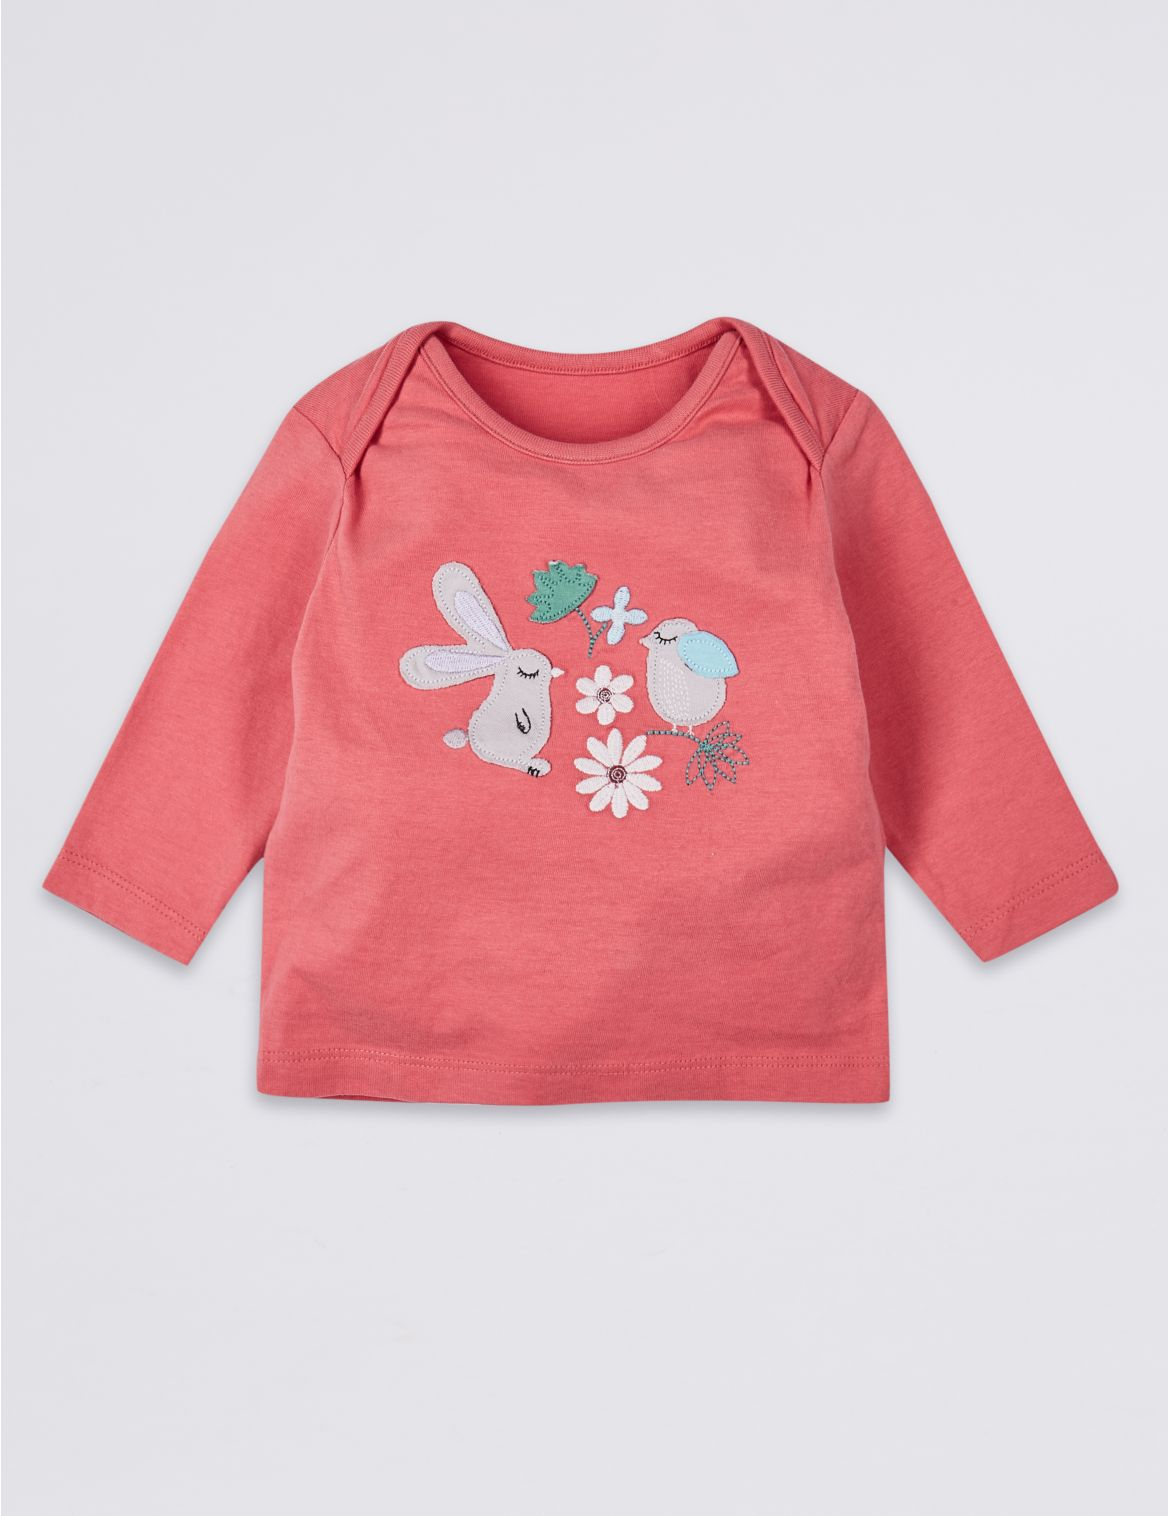 718e9a7a Girls Clothing - Compare Prices & Buy with Paylessdeal Australia